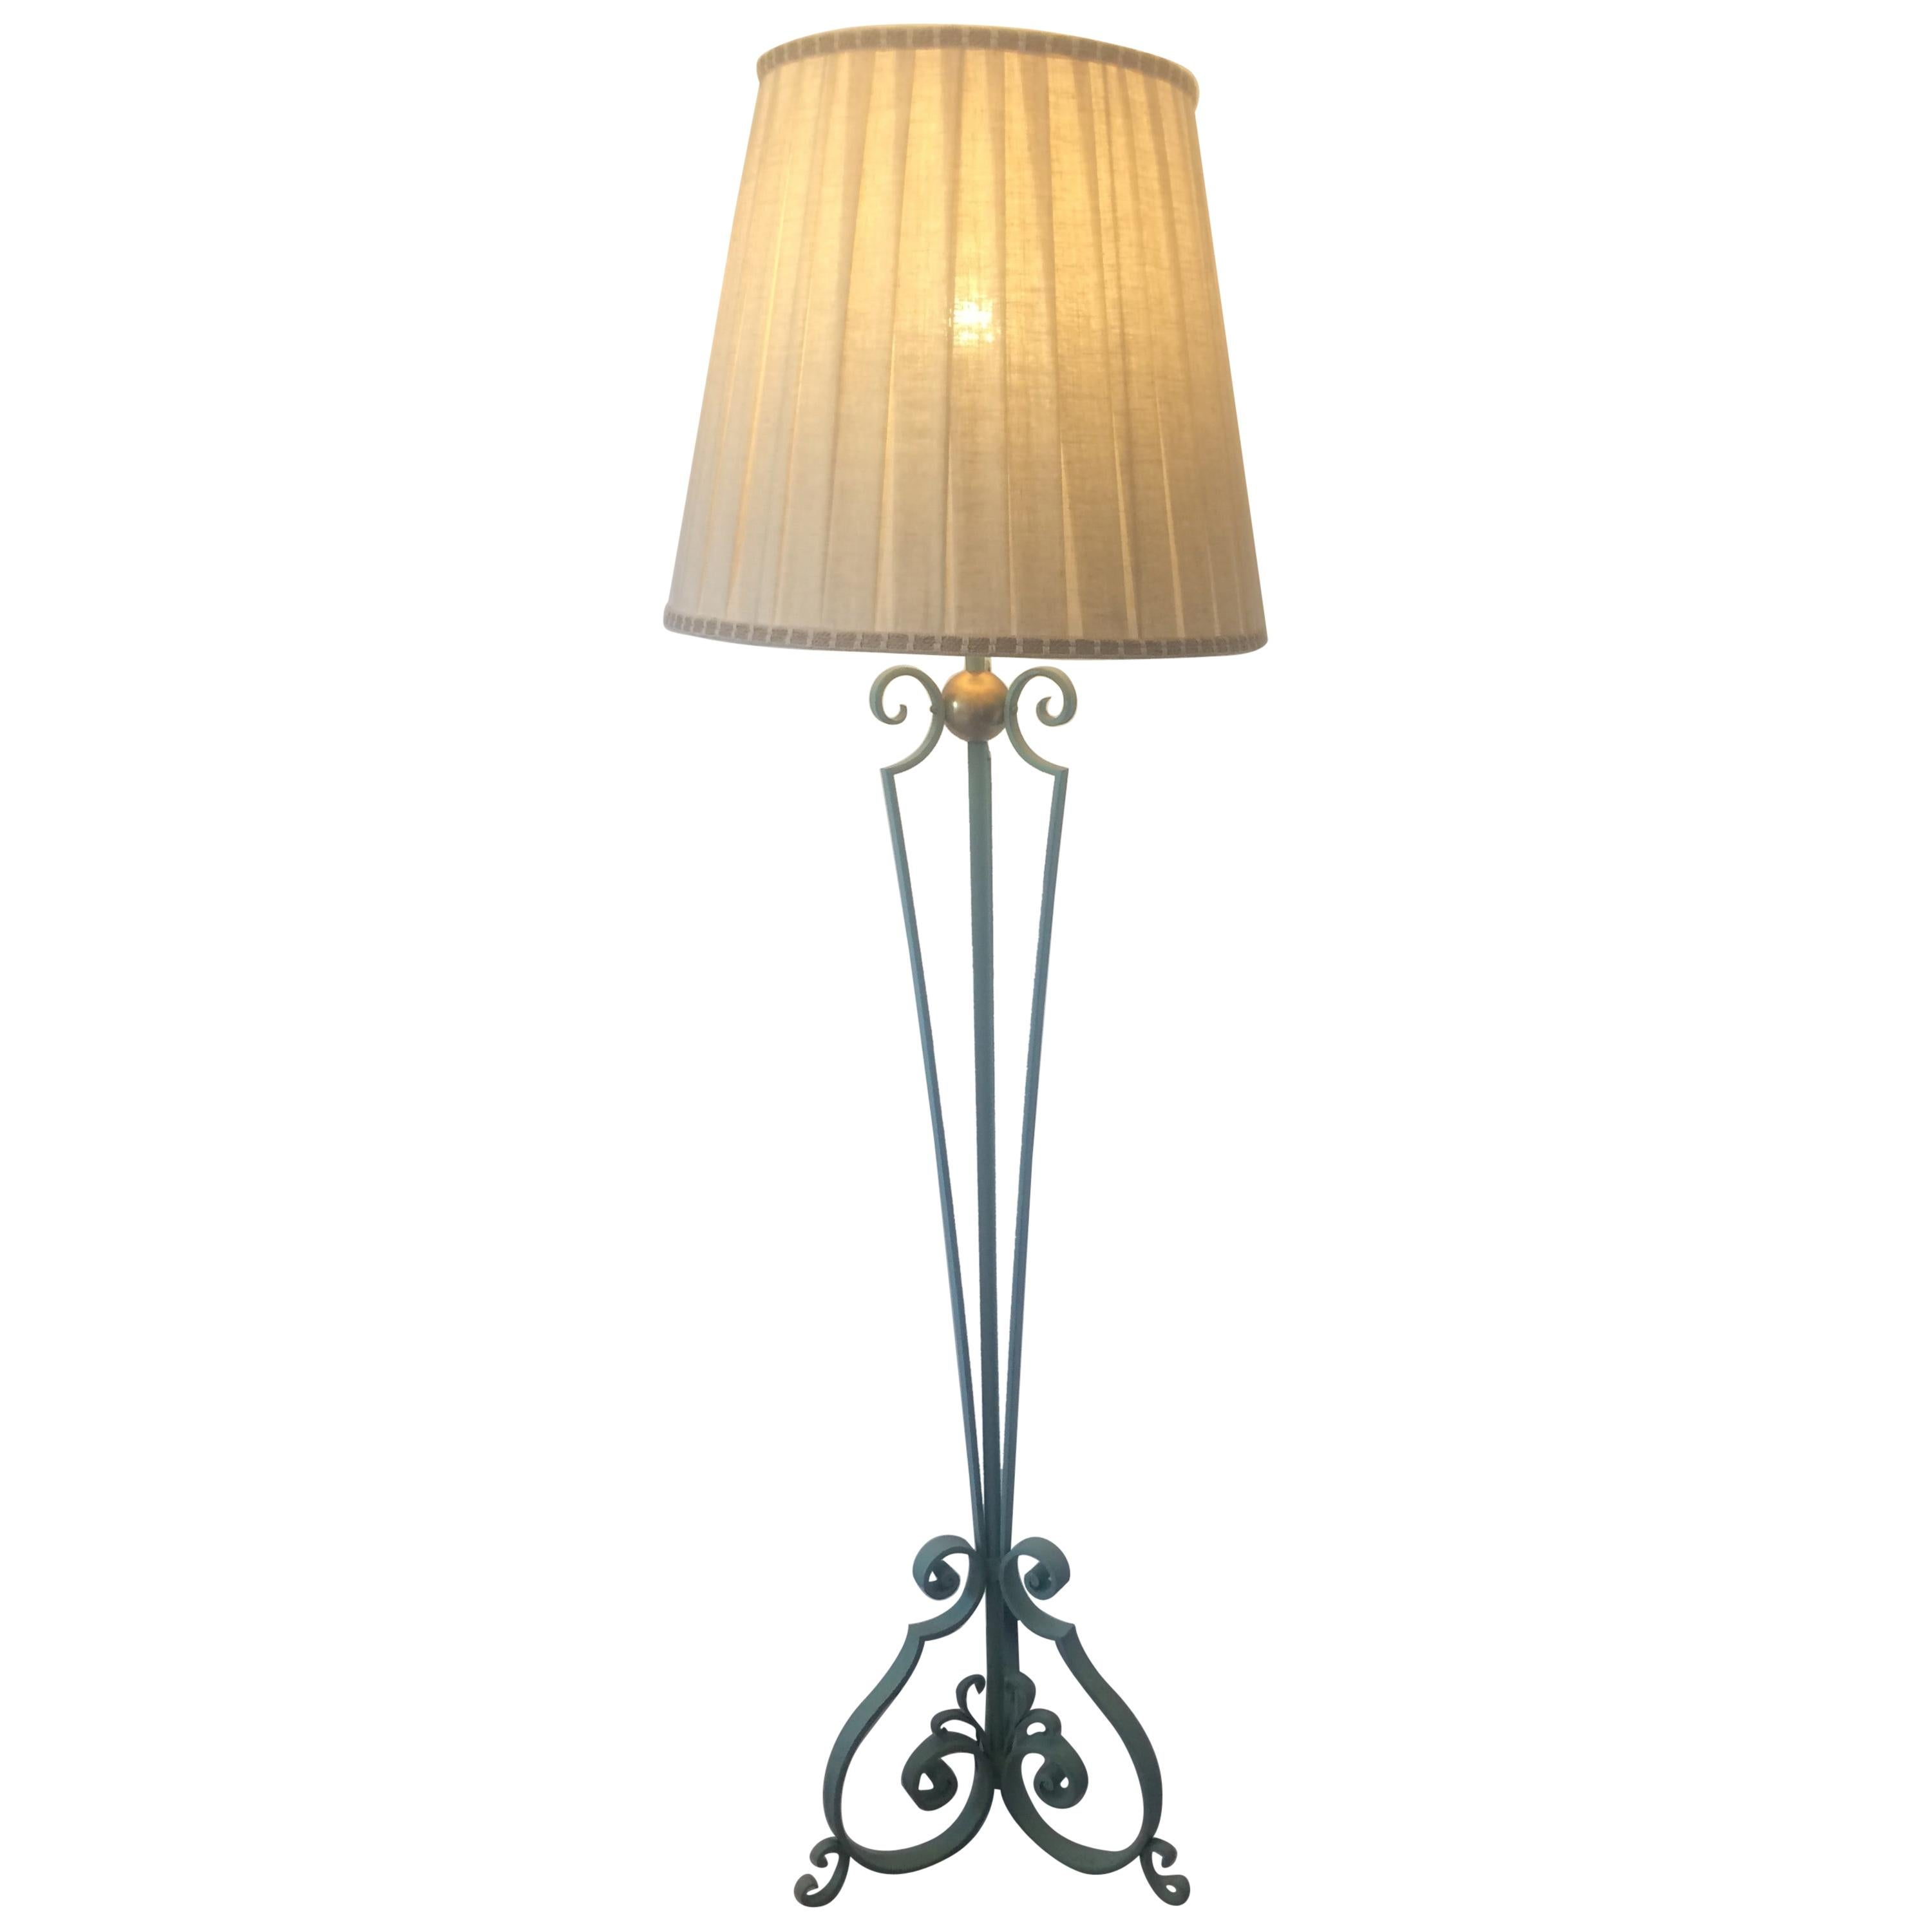 French Wrought Iron Floor Lamp in the style of Gilbert Pollierat, circa 1950s